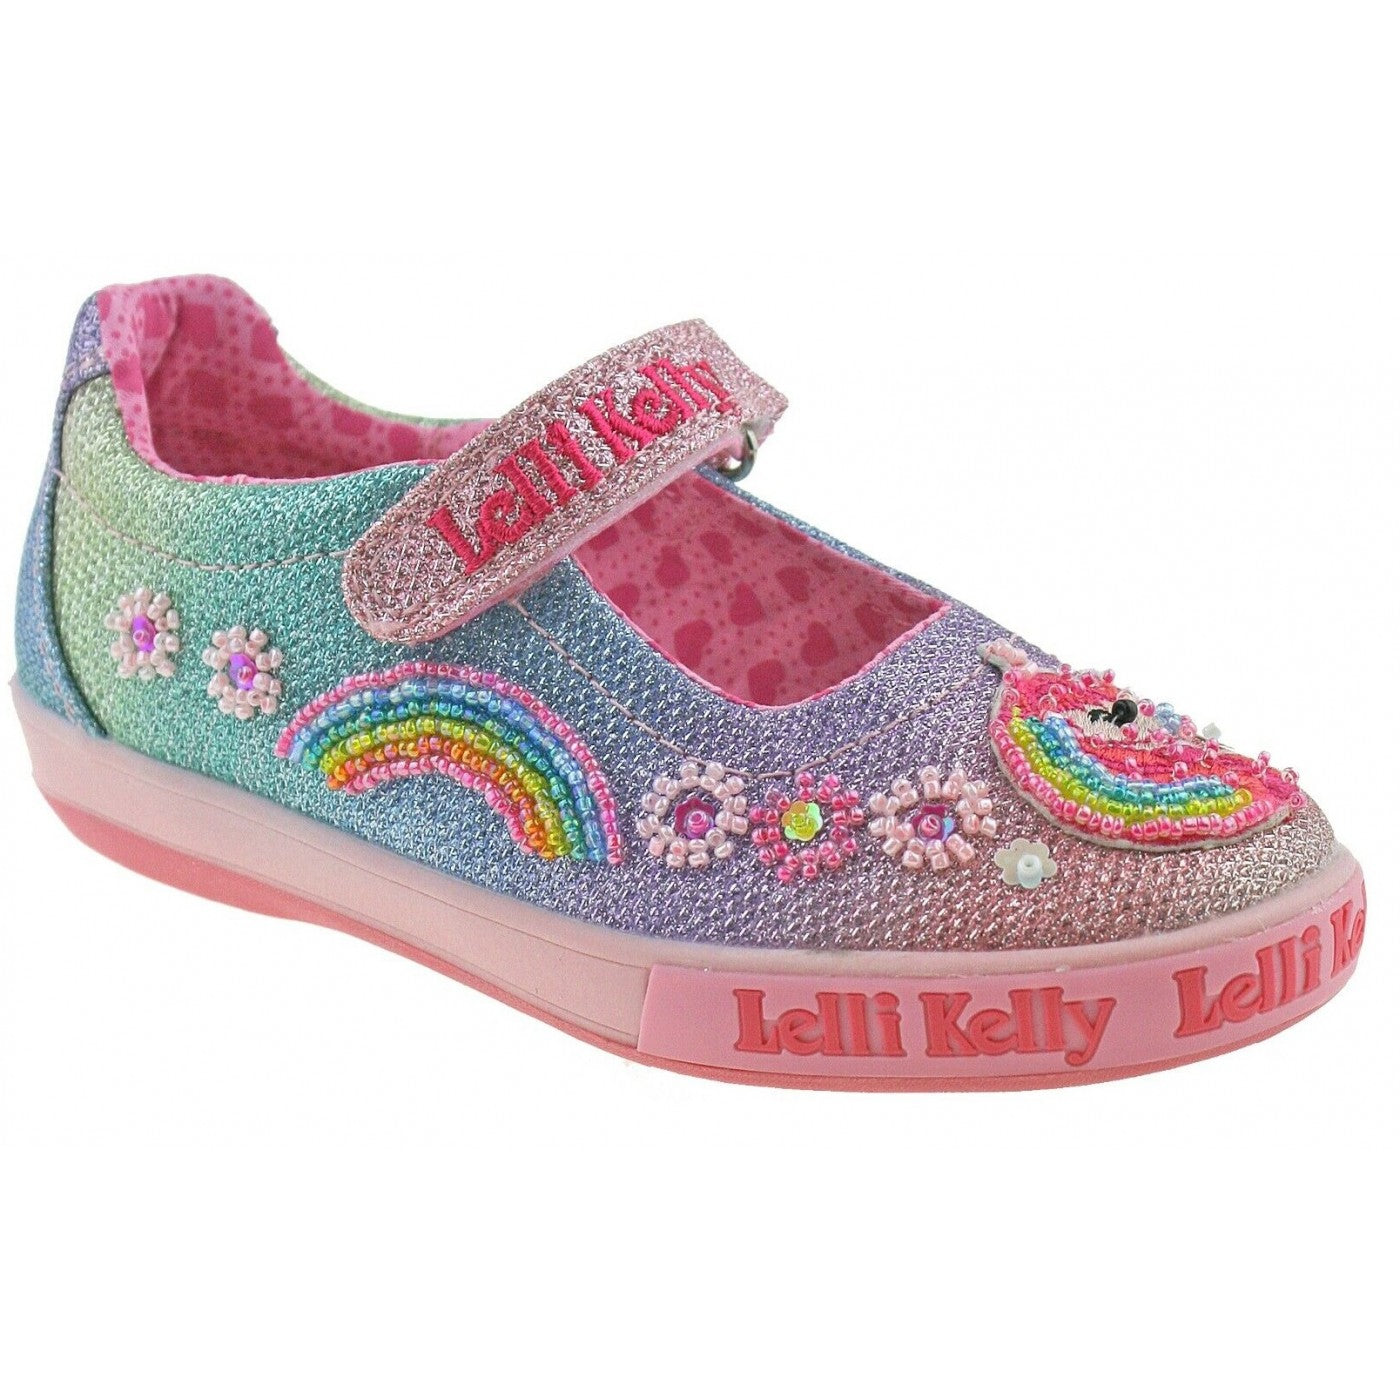 Lelli Kelly Rainbow Unicorn Girls Shoes *NEW 2020 STOCK*